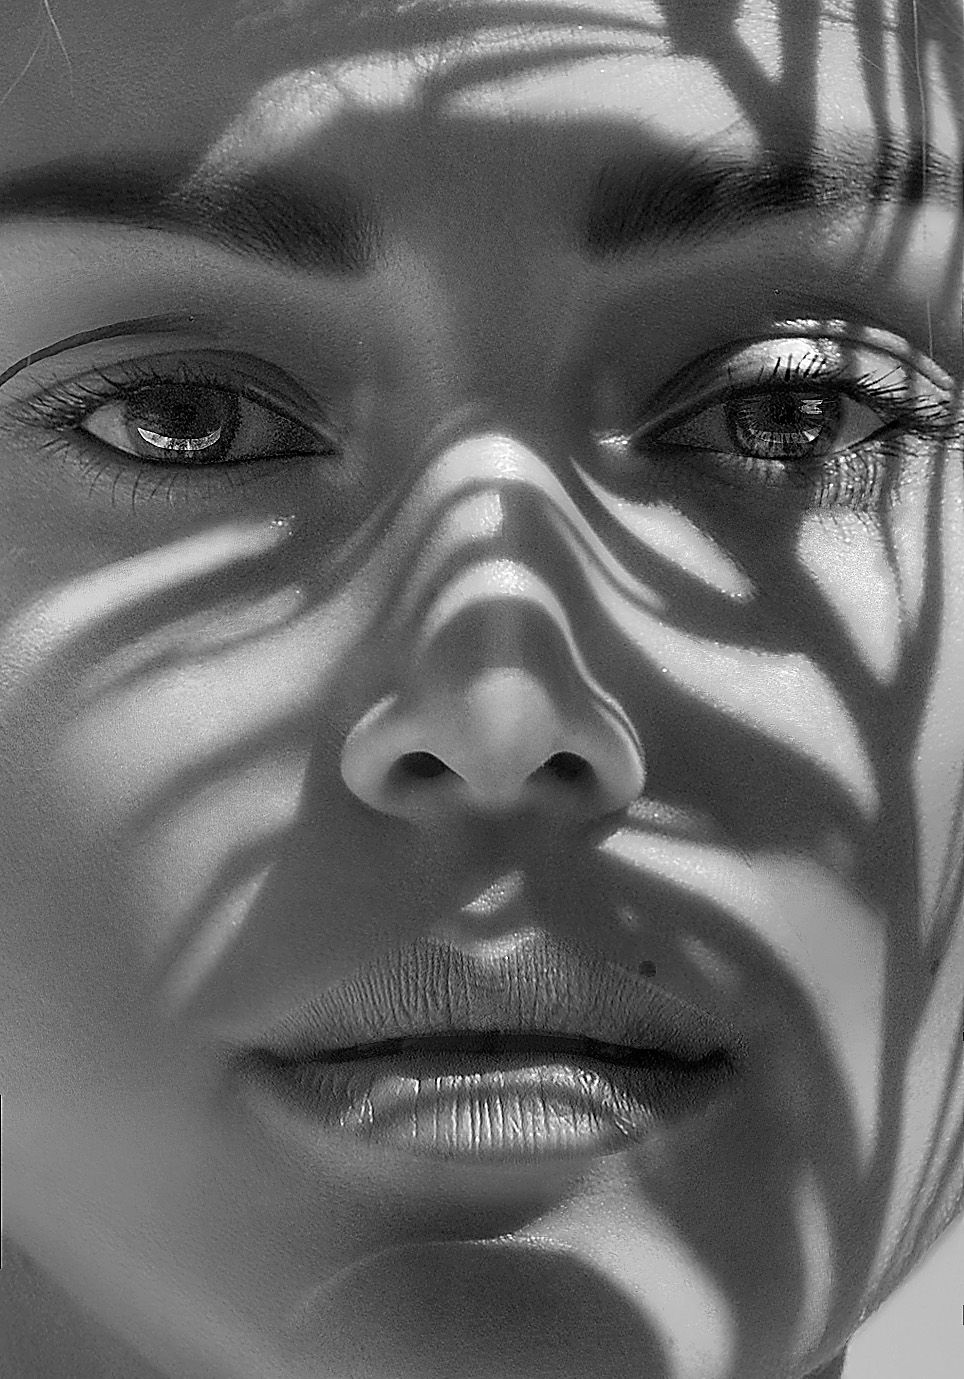 Art 42 face photo aesthetic example beautiful person